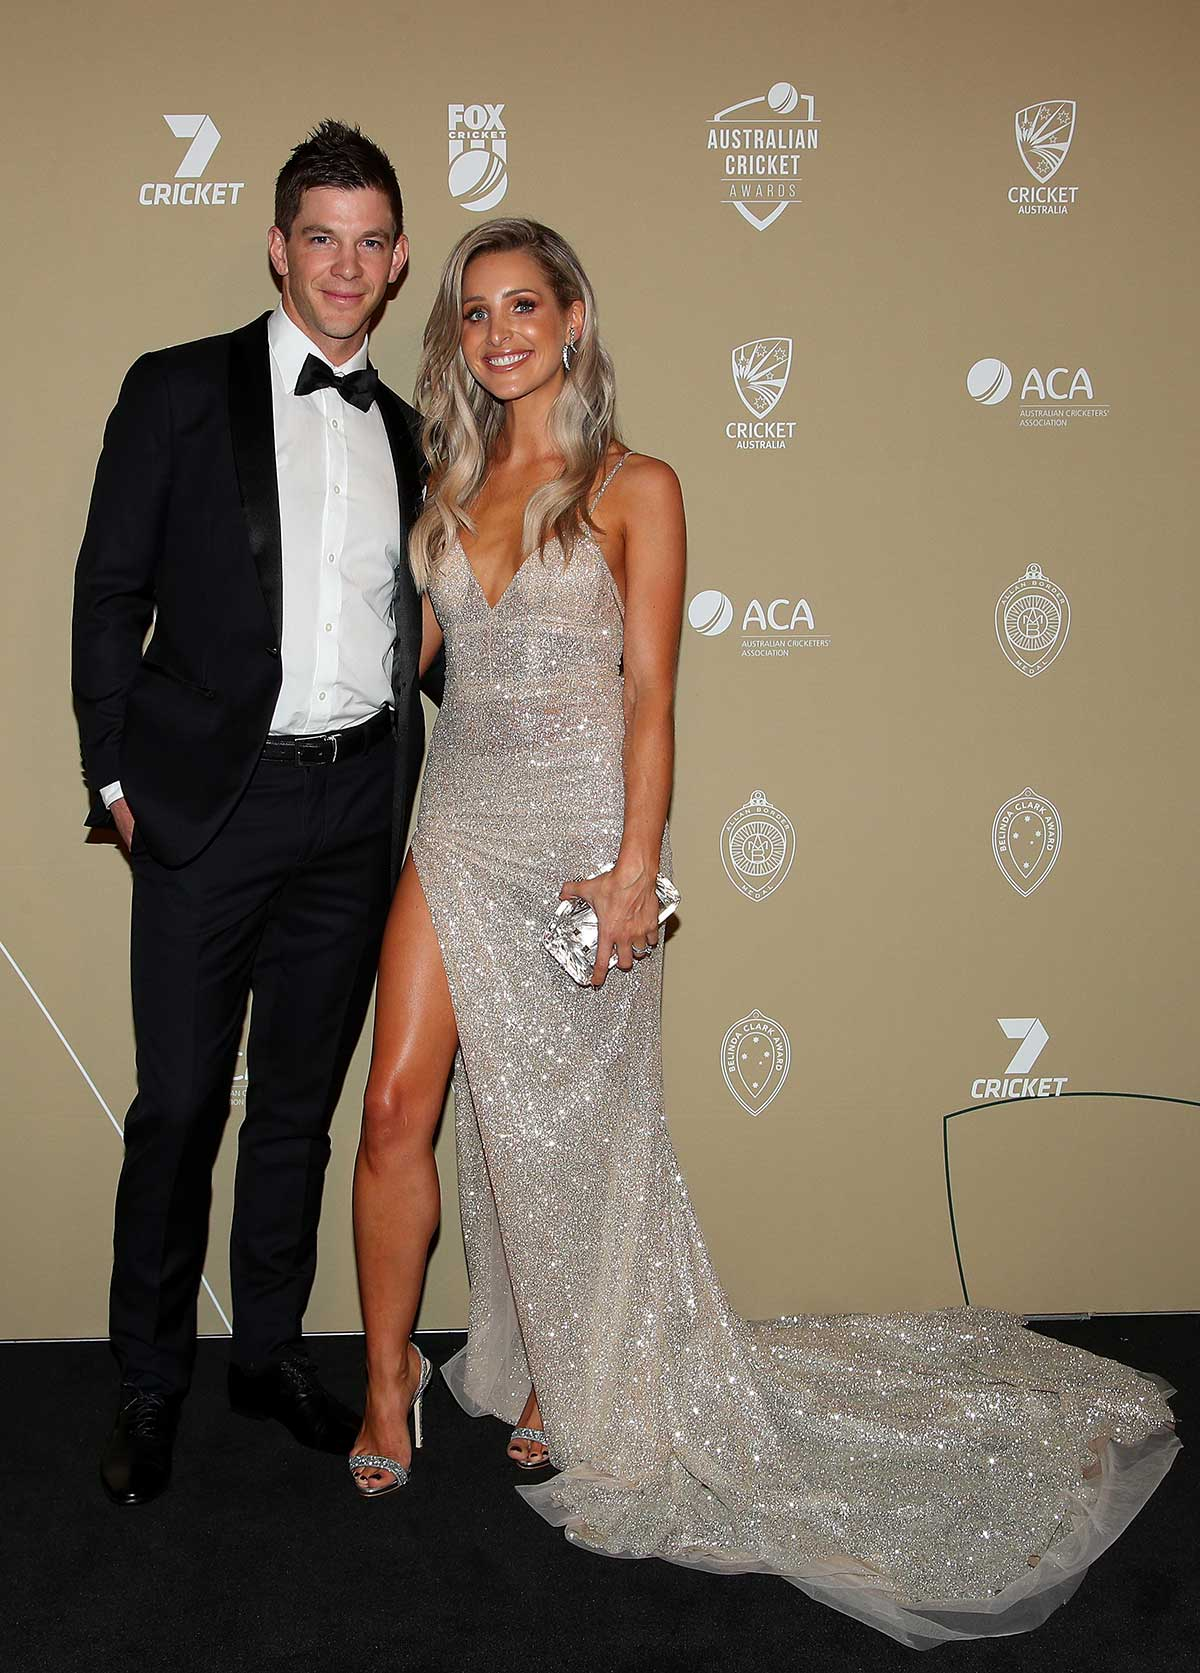 Australia Test captain Tim Paine and wife Bonnie // Getty